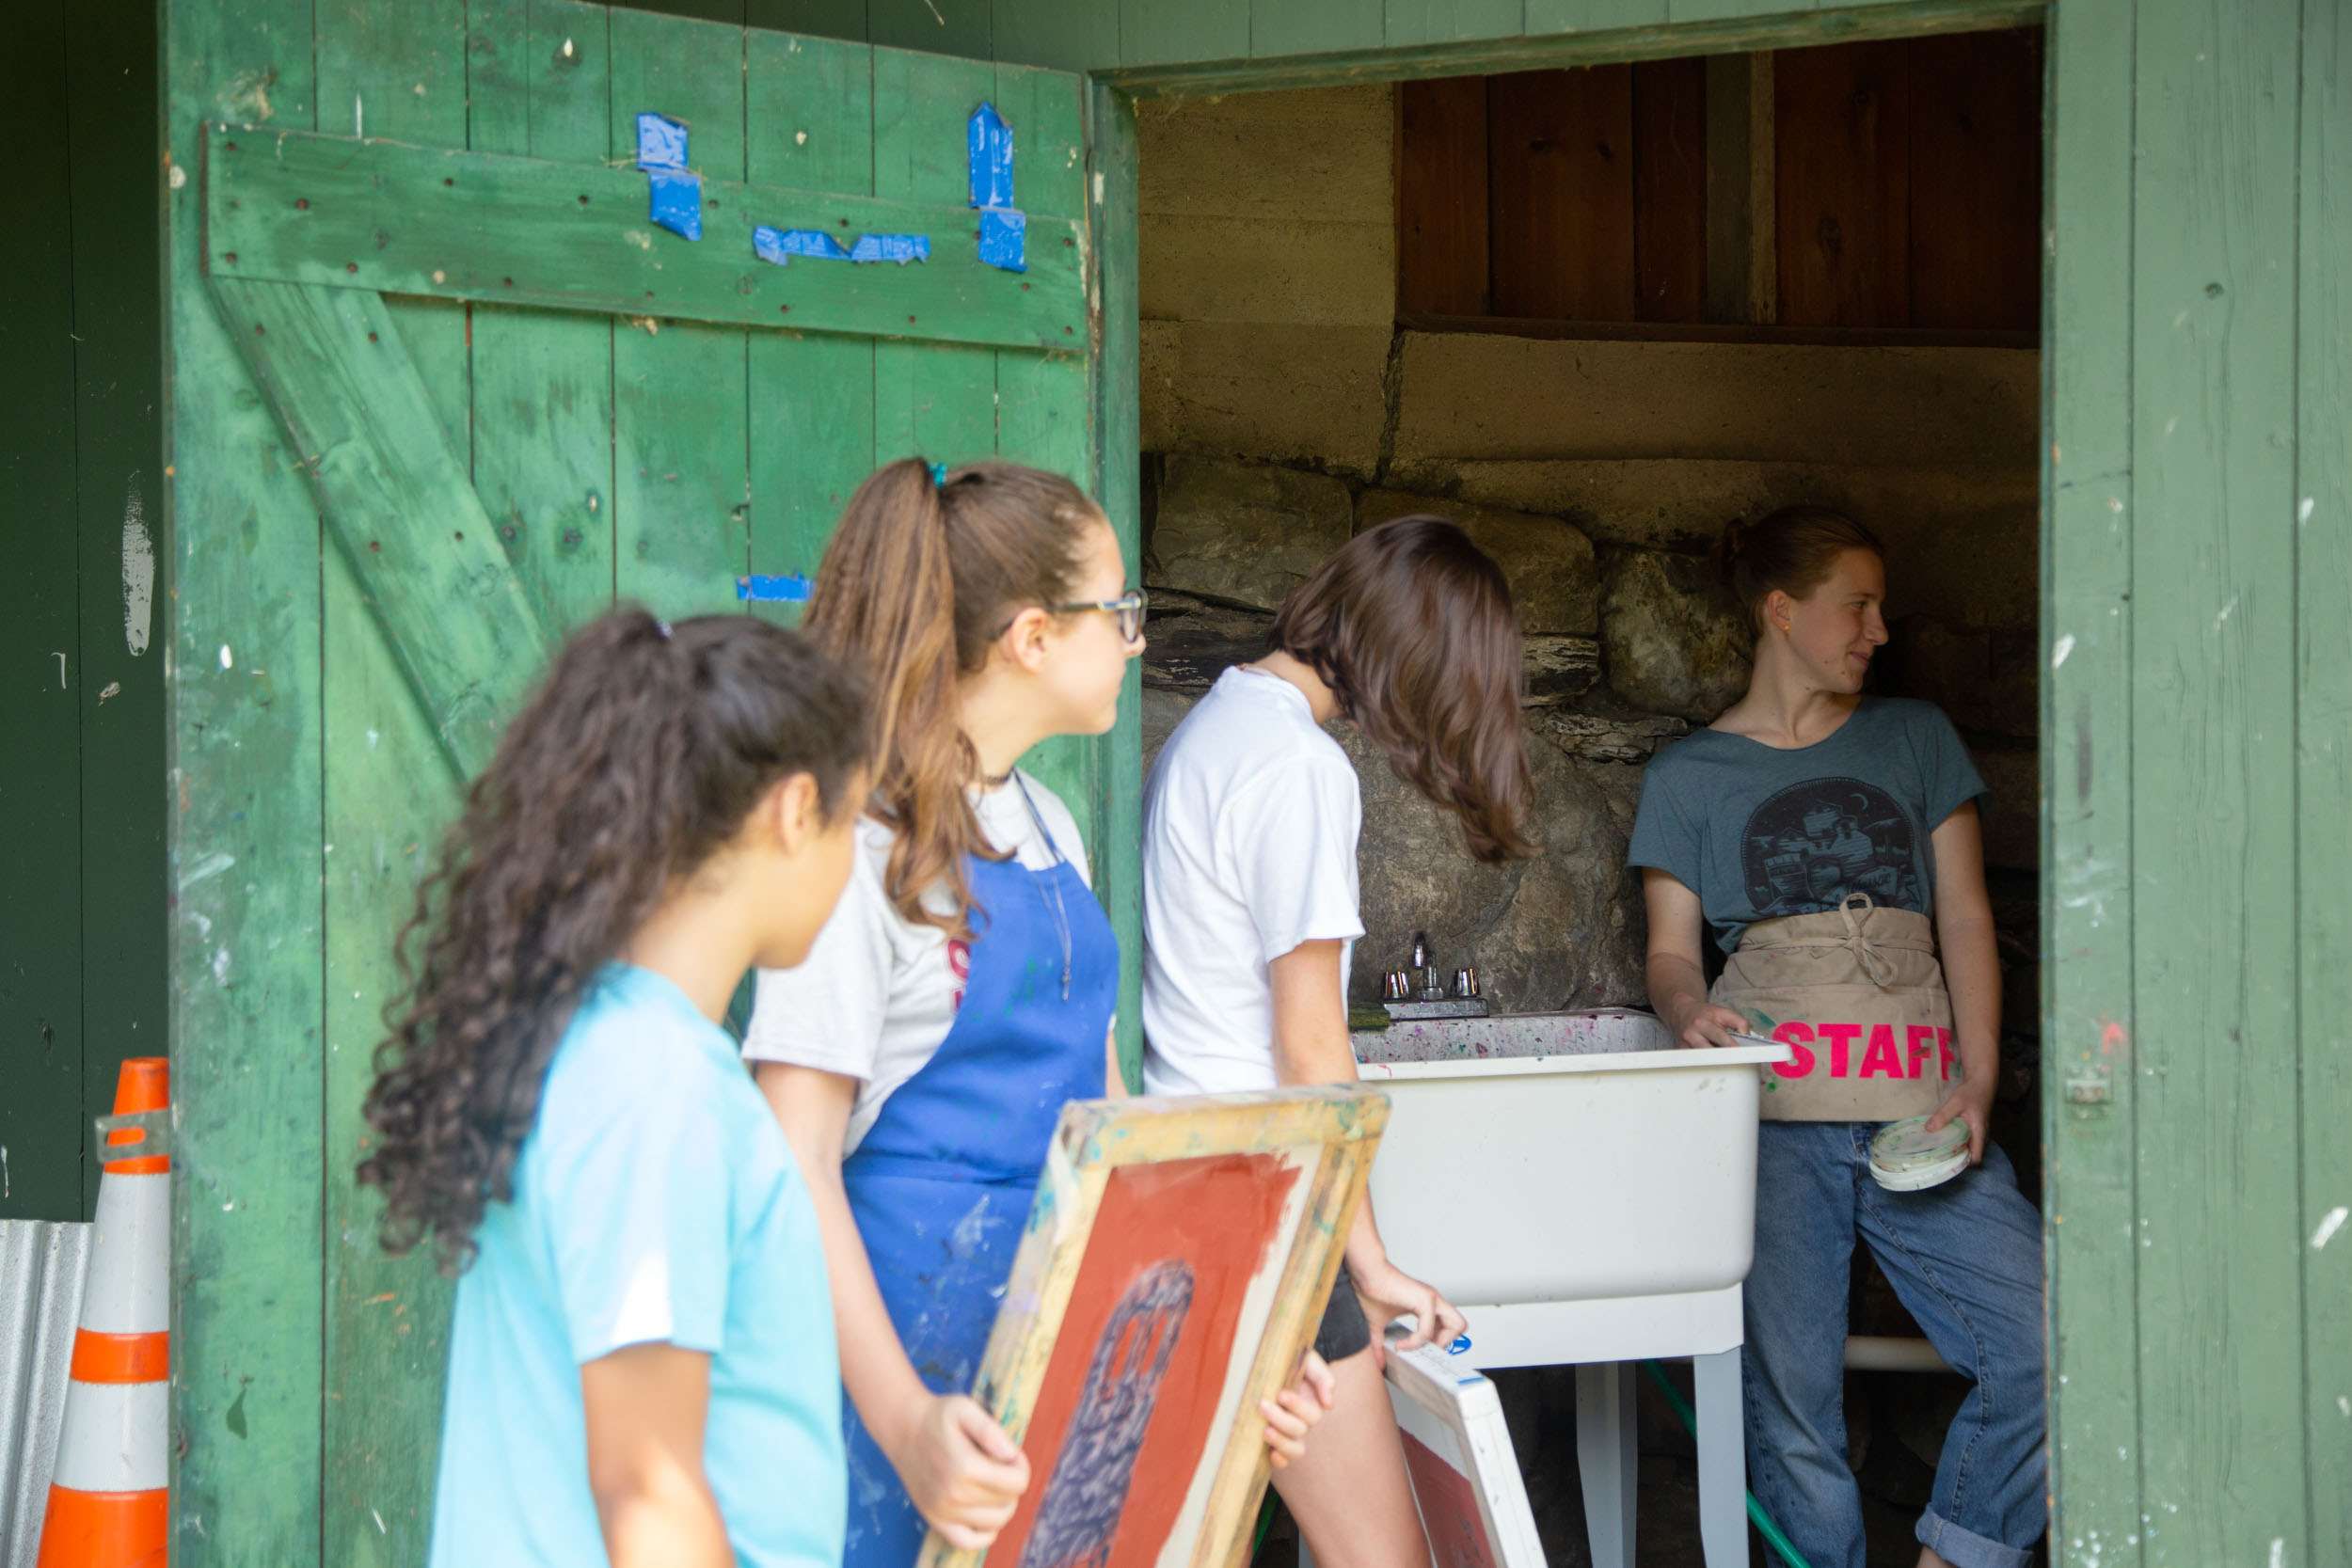 wassaic-project-education-teen-screenprinting-camp-2018-08-15-12-37-31.jpg